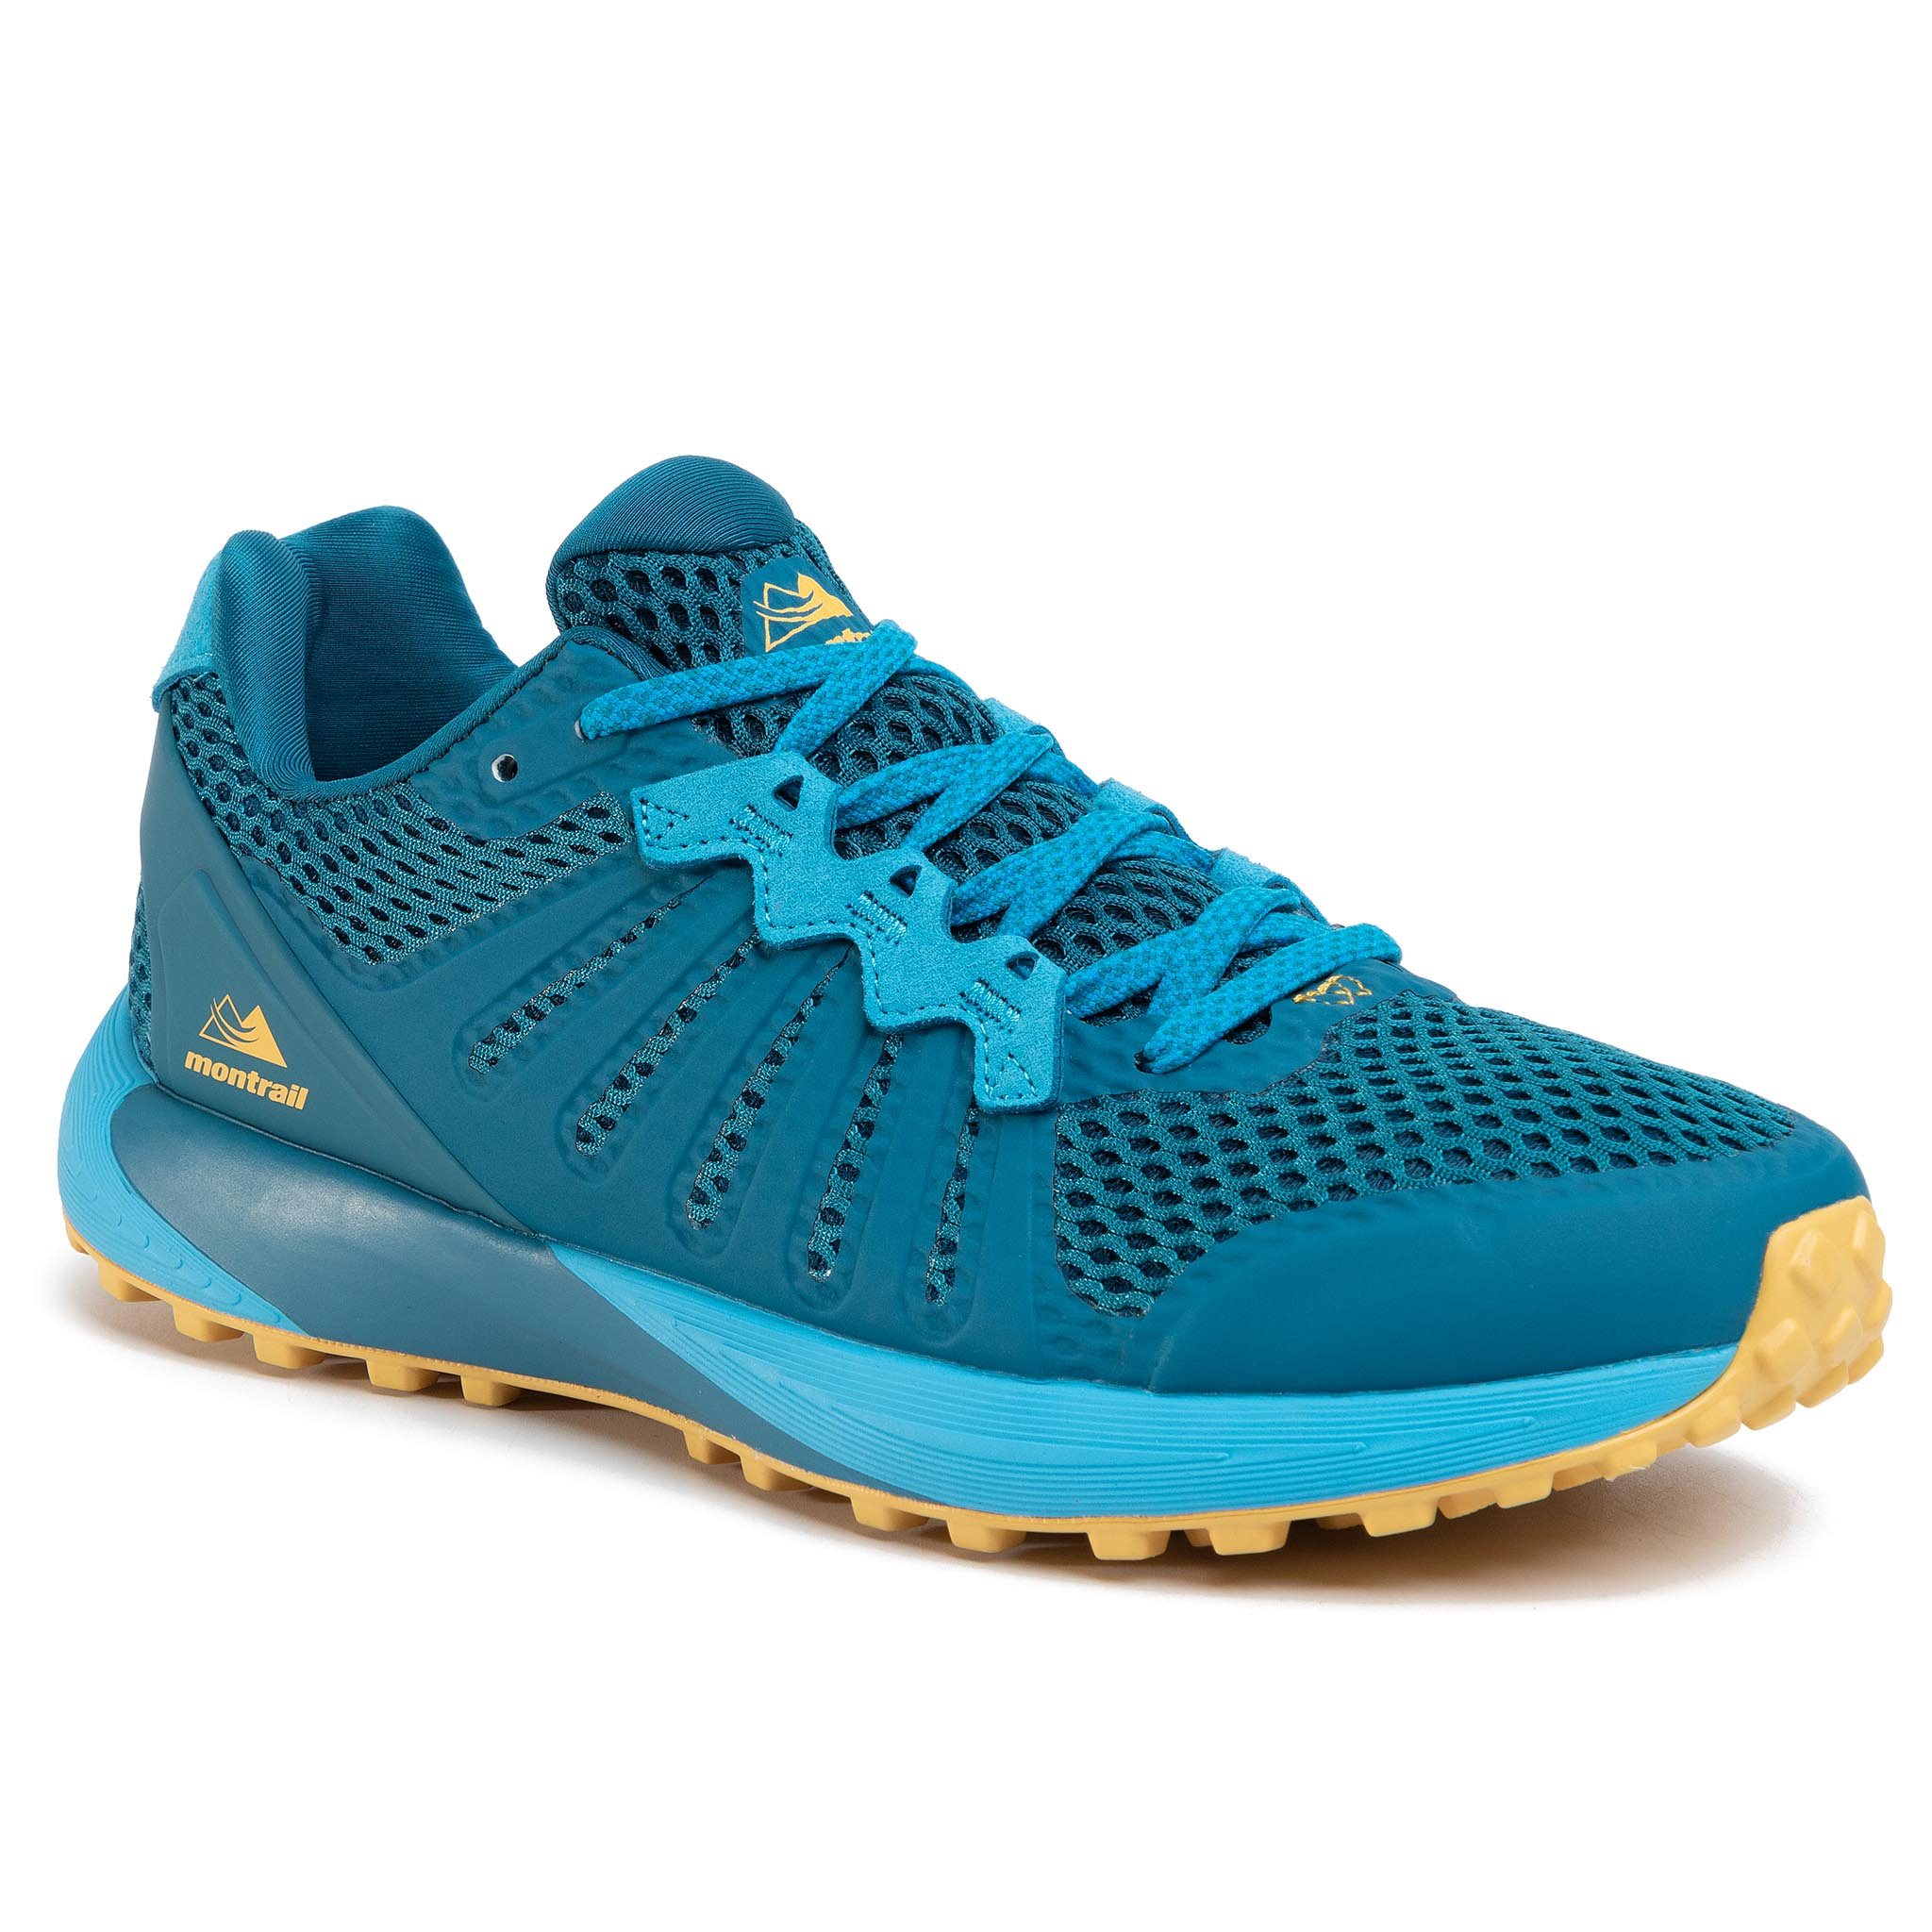 Batai COLUMBIA - Montrail F.K.T. BM0109 Dark Turquoise/Golden Nugget/Turquoise Sombre/Pepite D'Or 435